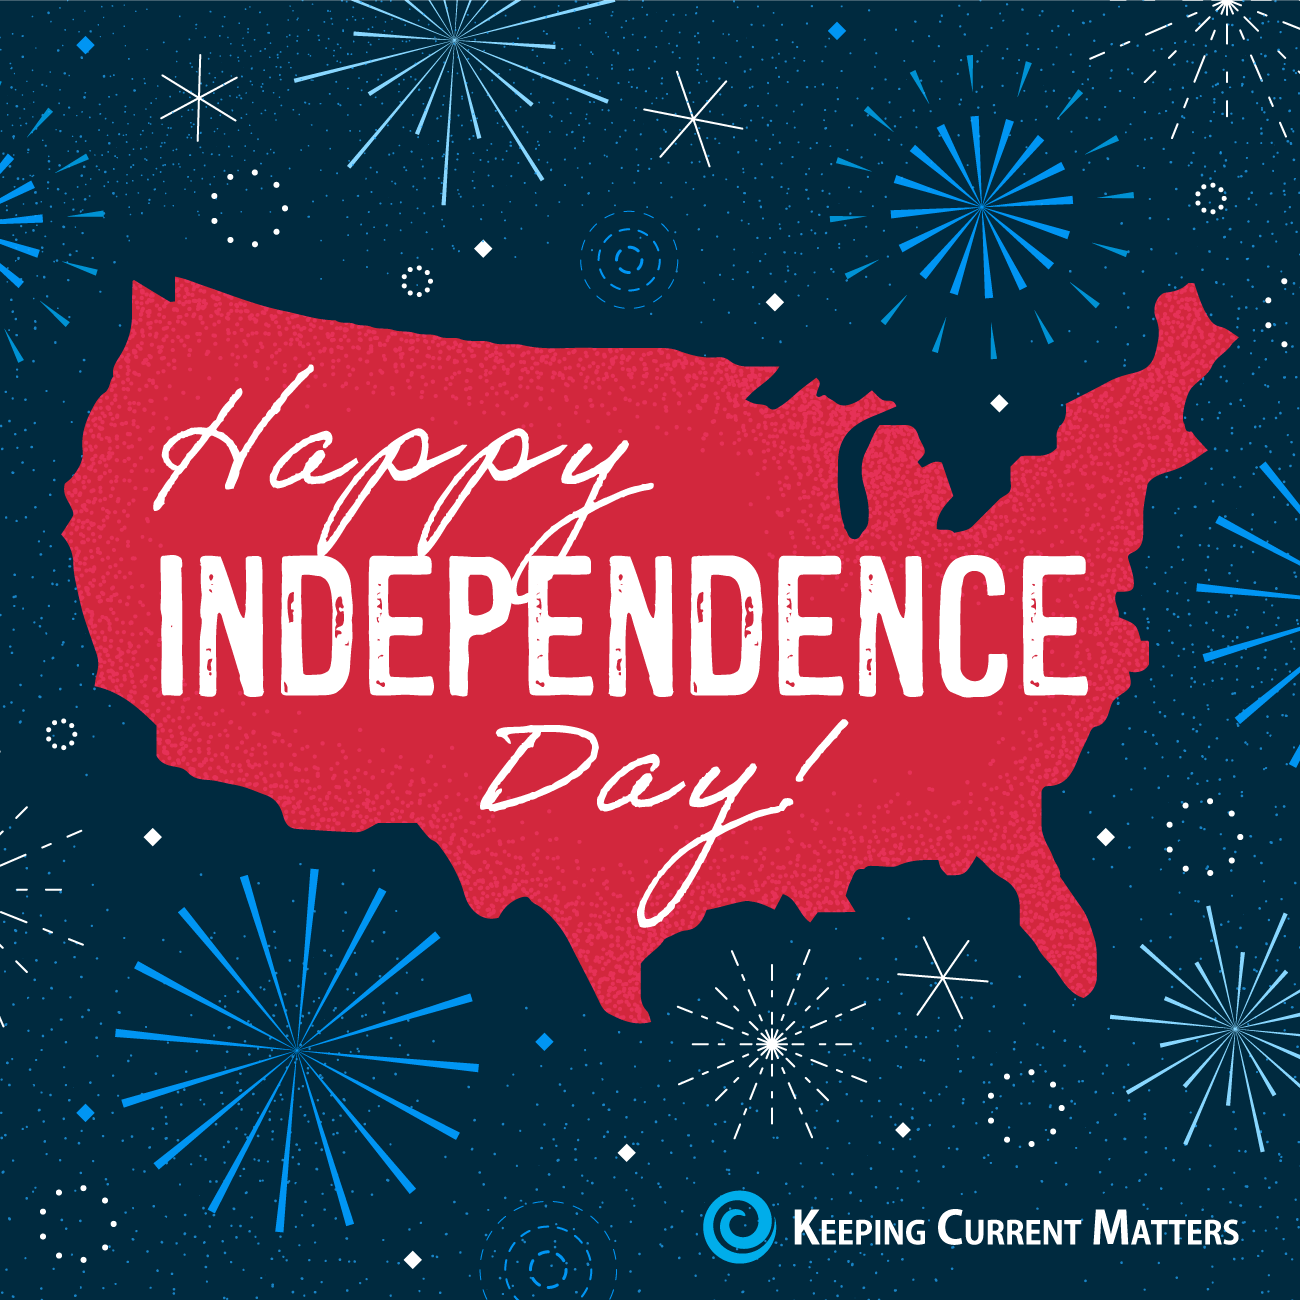 Happy Independence Day! | Keeping Current Matters